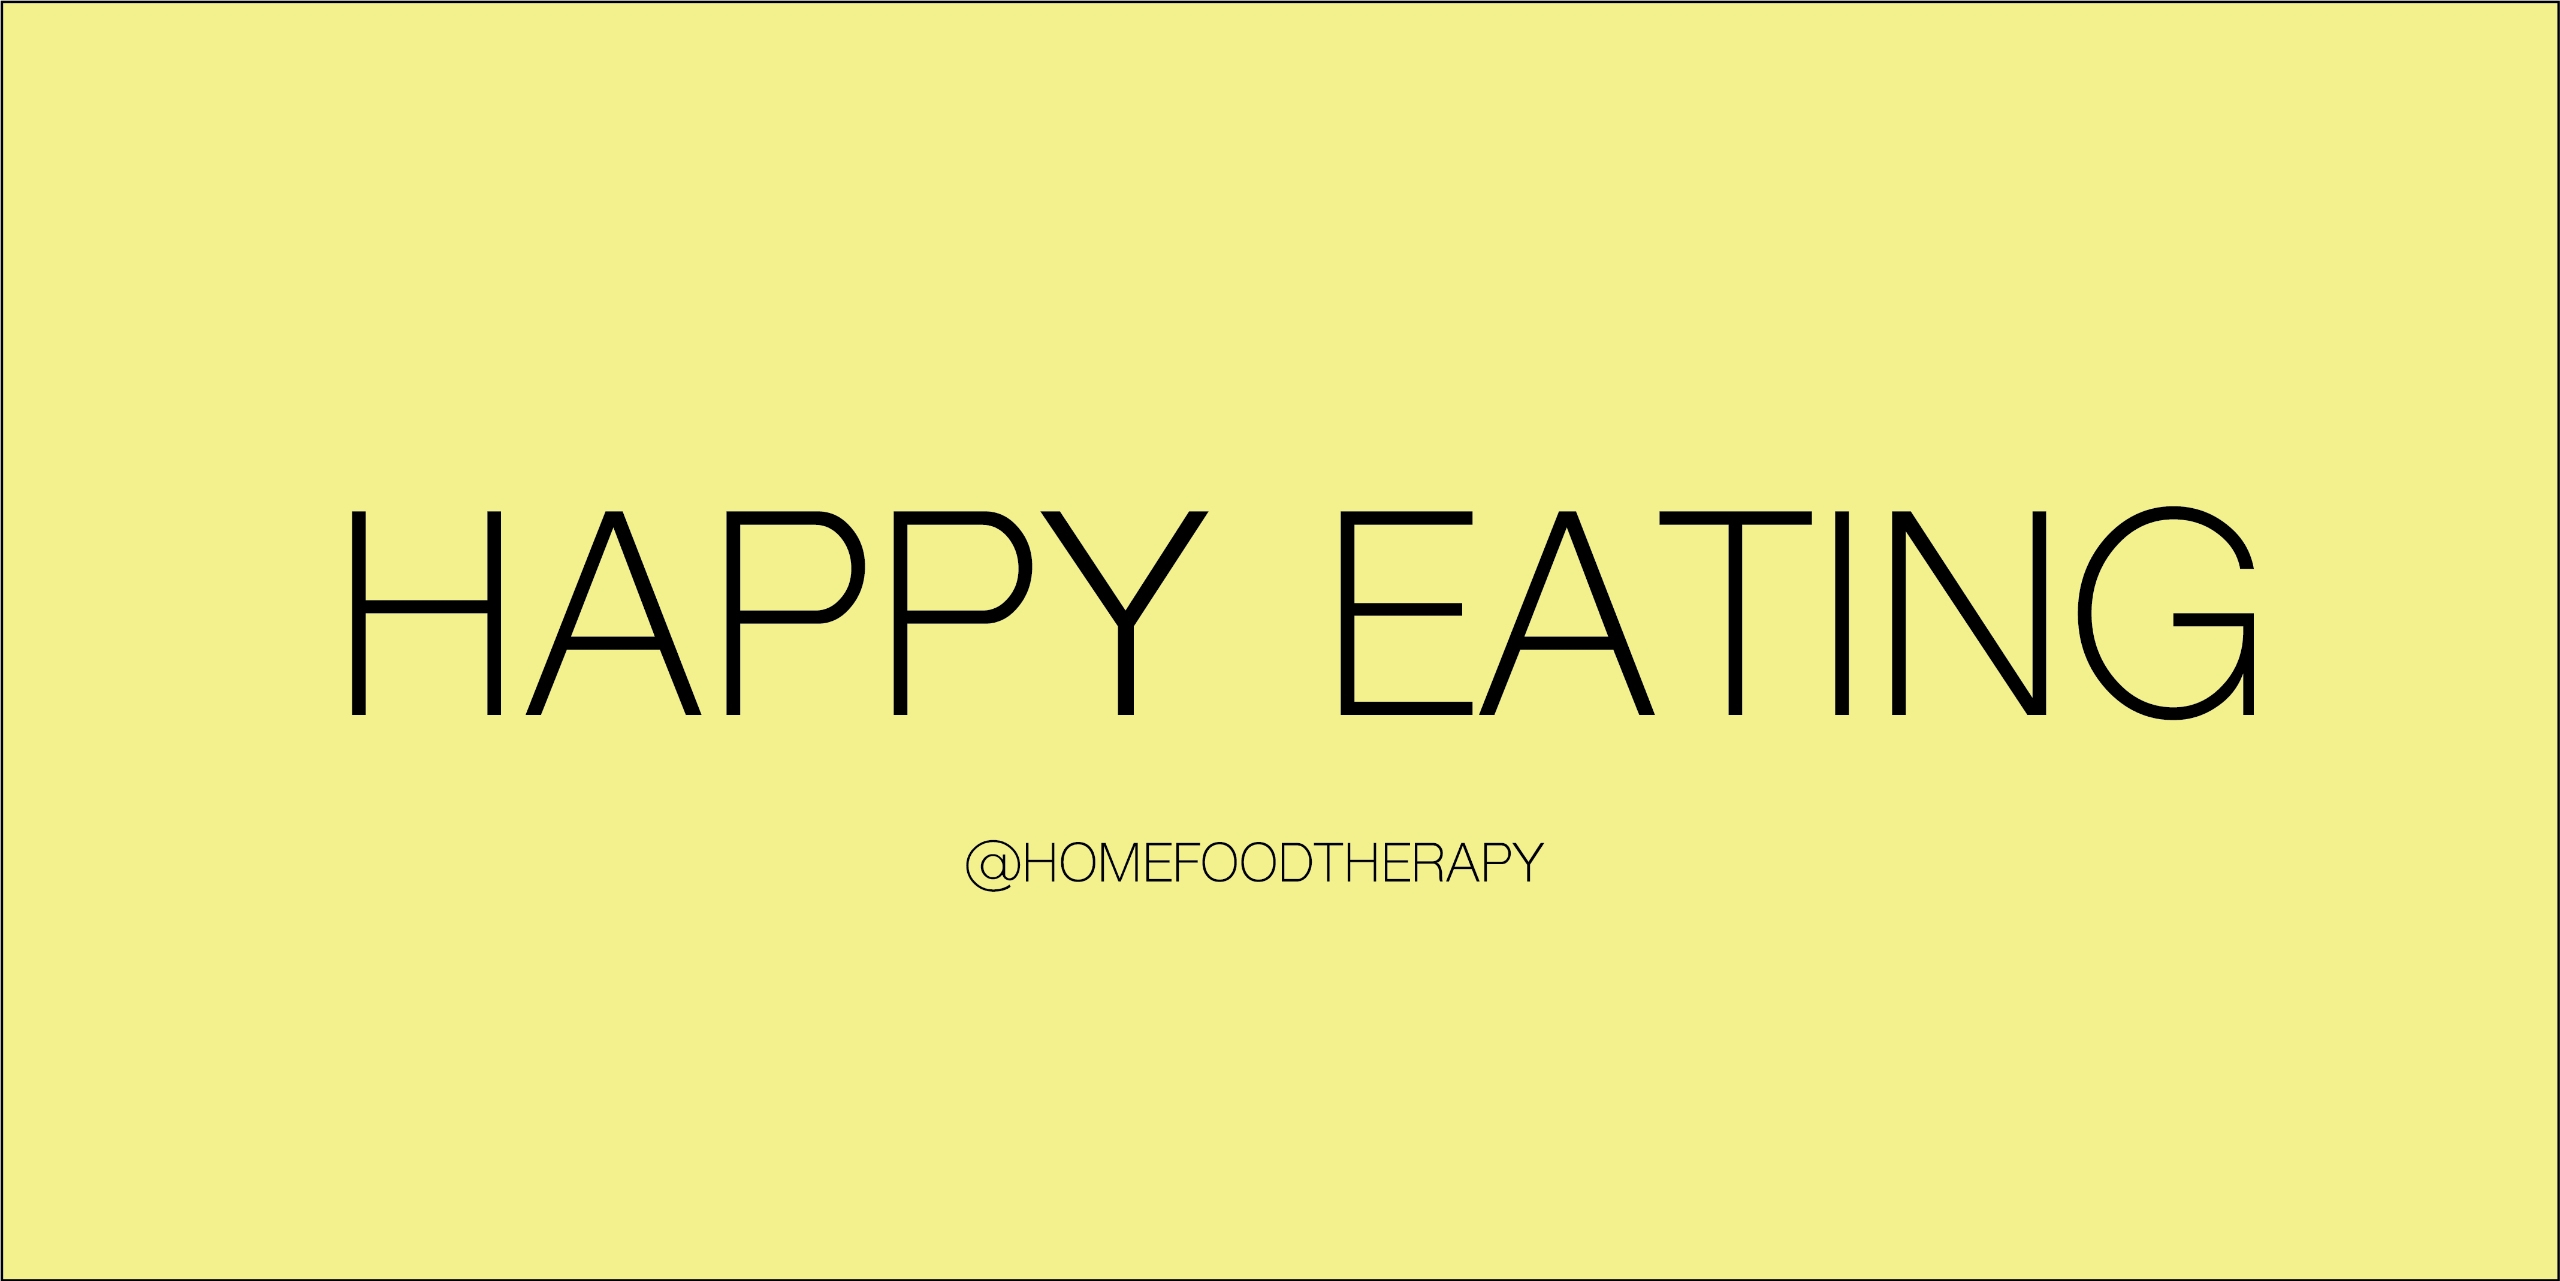 Home Foo Therapy (@homefoodtherapy) Cover Image